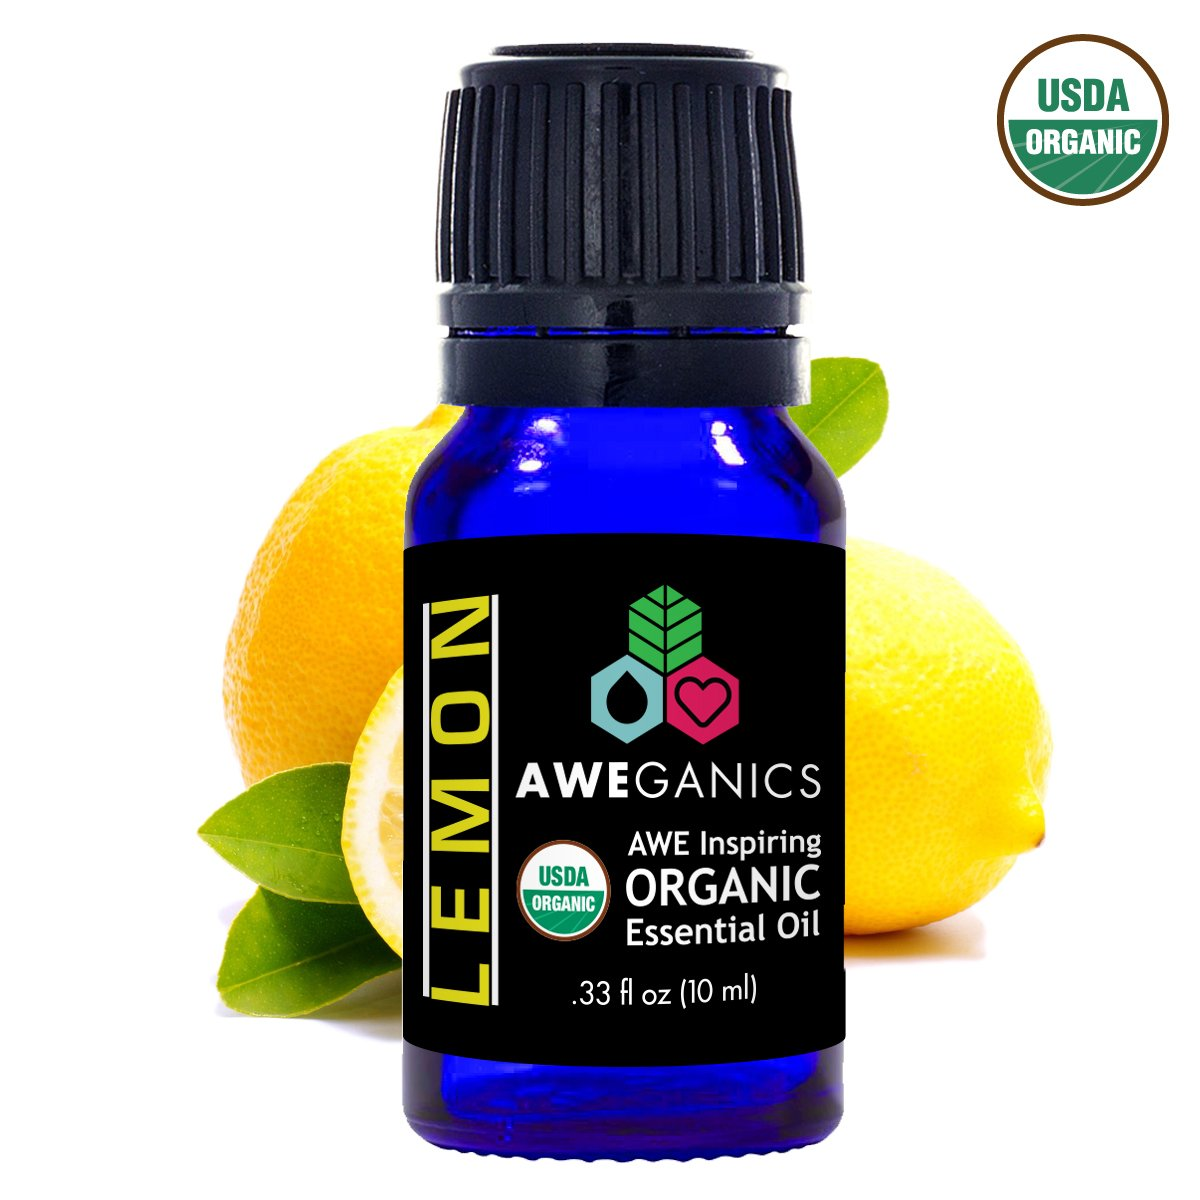 Aweganics Pure Lemon Oil USDA Organic Essential Oils, Premium Citrus Limon 100% Pure Natural Therapeutic-Grade, Best Aromatherapy Scented-Oils for Diffuser, Skin, Face, Bath, Hair 10 ML MSRP $14.99